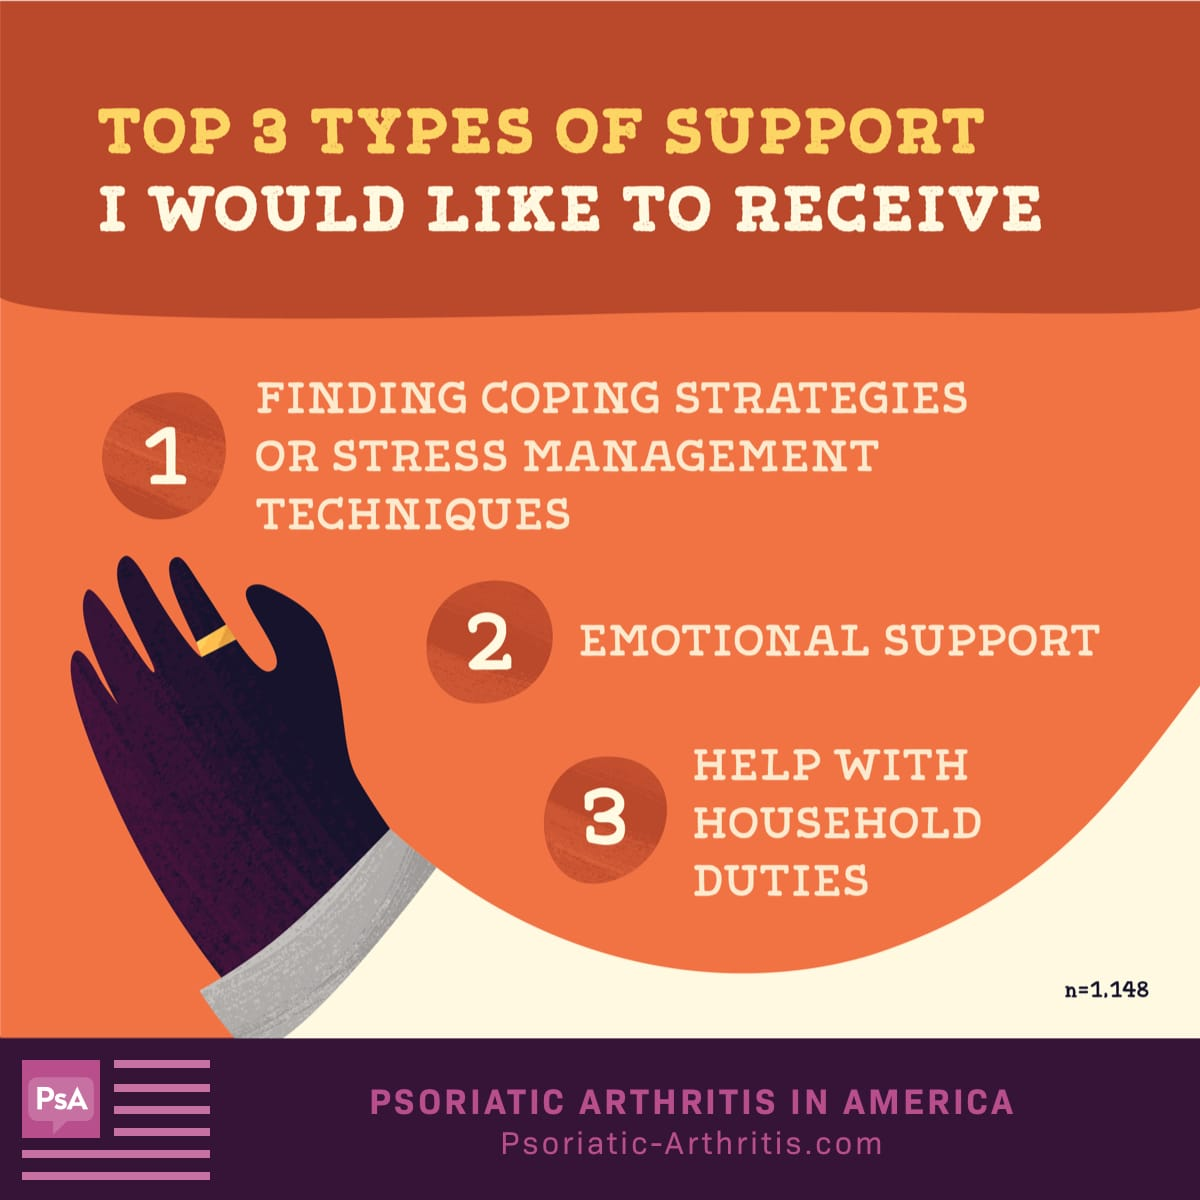 Top 3 types of support patients would like to receive are finding coping strategies or ways to manage stress, emotional support, and help with household duties.